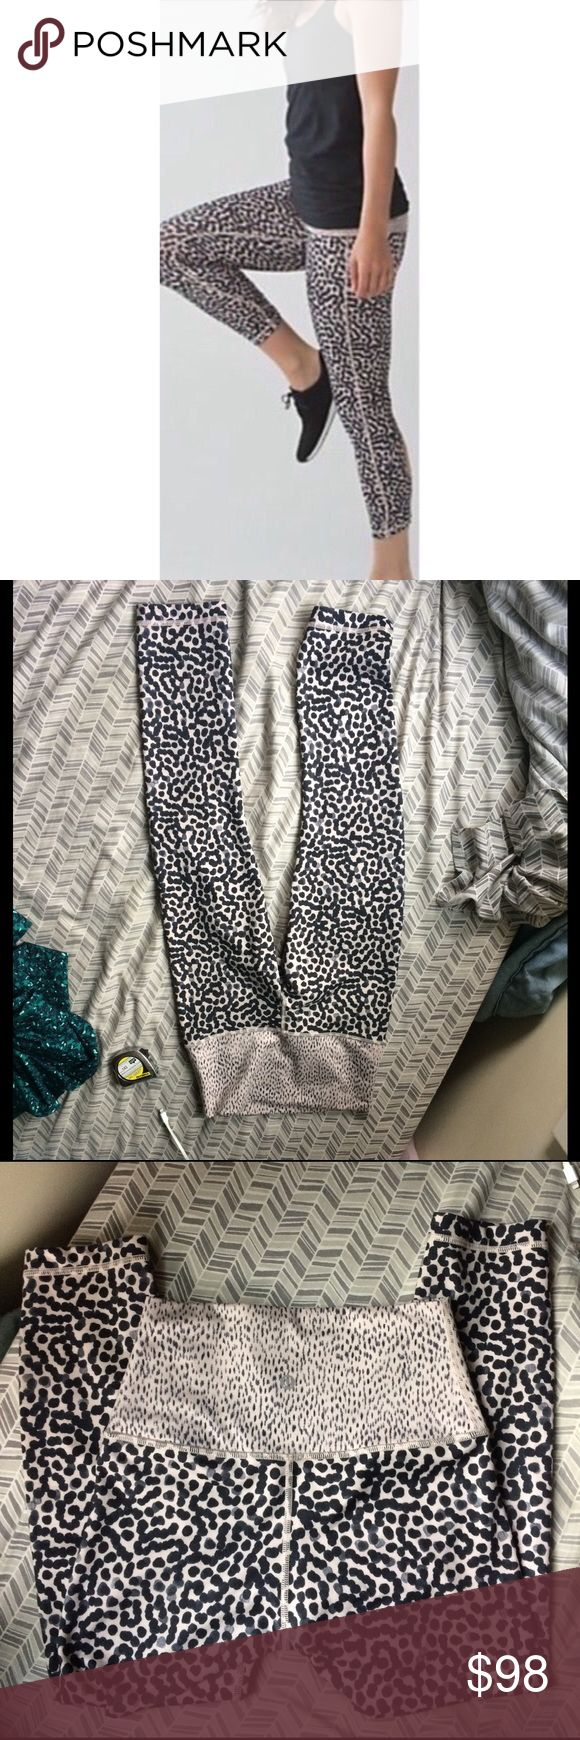 "Lululemon high rise wunder under leopard crops Authentic leopard Lululemon high rise roll down wunder under crops. Slightly different from the stock photo. Sorry I don't model. Good condition. Size tag was removed and these don't have a size dot, they're a size 2 though. Price somewhat firm as these are harder to find. Inseam 21"", front rise 9"" lululemon athletica Pants Leggings"